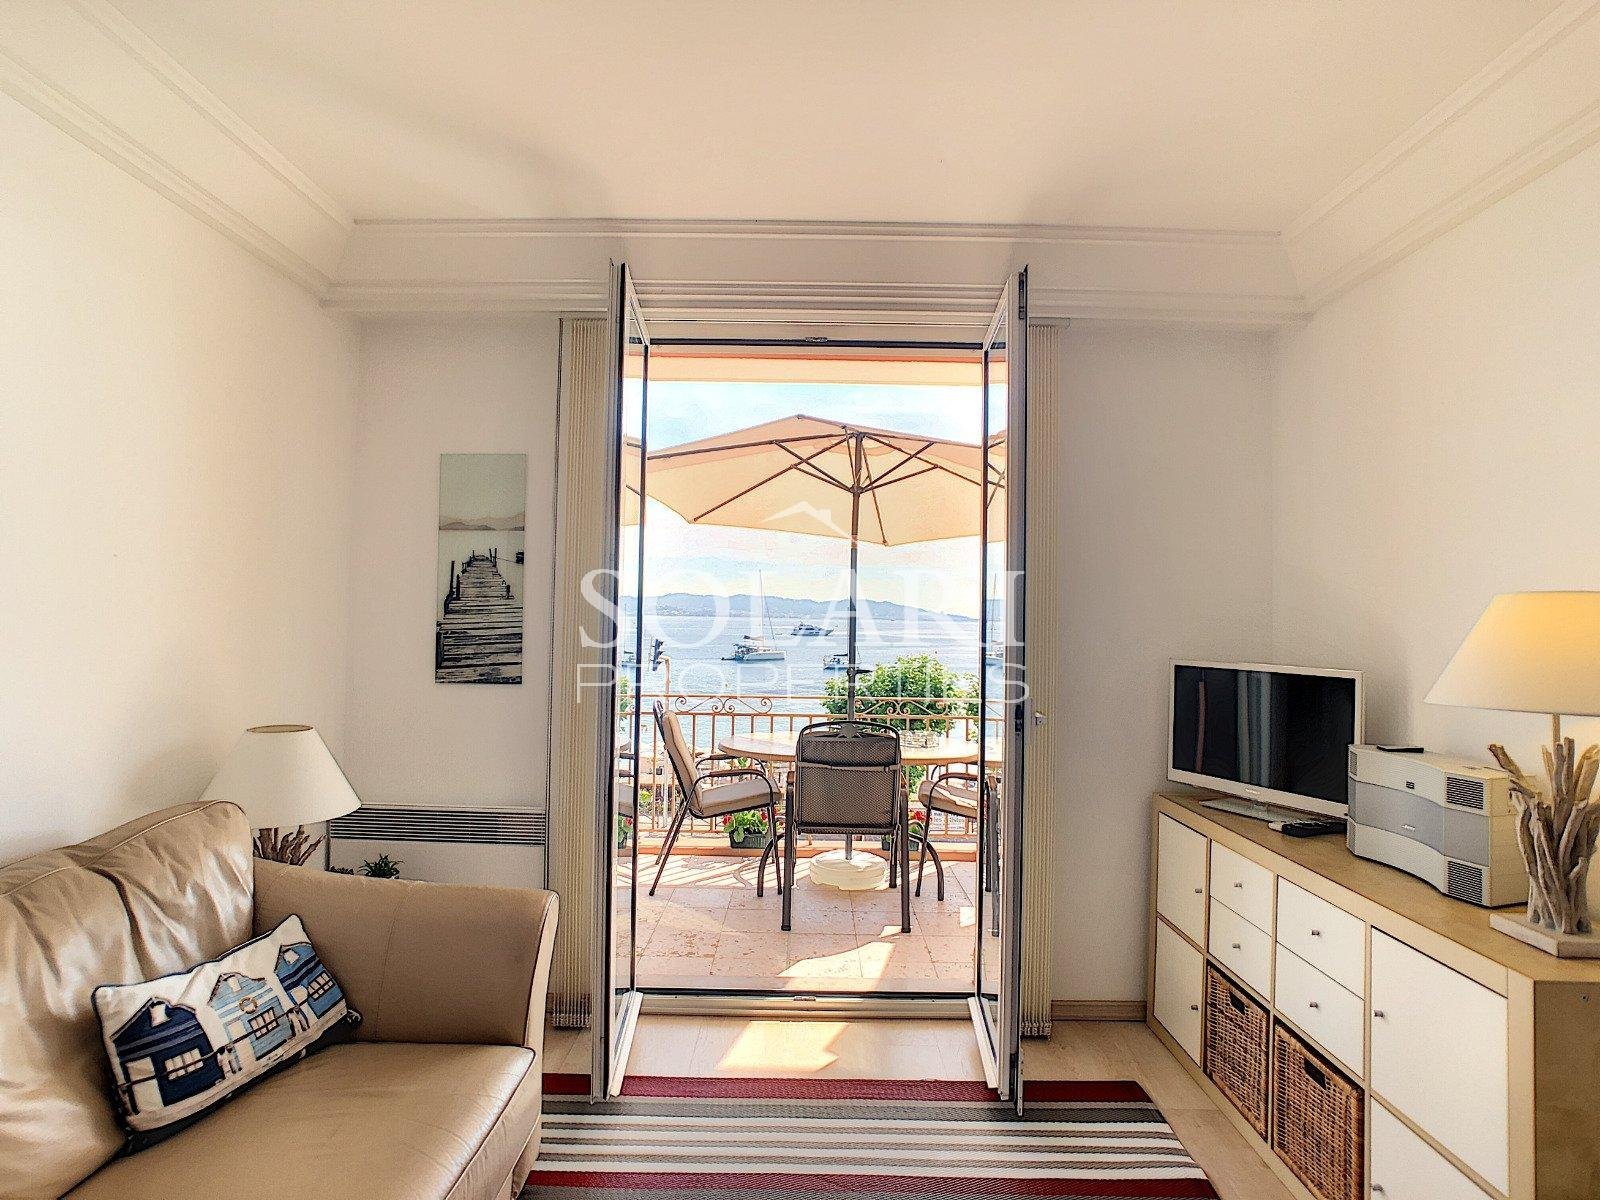 2 bedroom apartment facing the sea in the village of Théoule